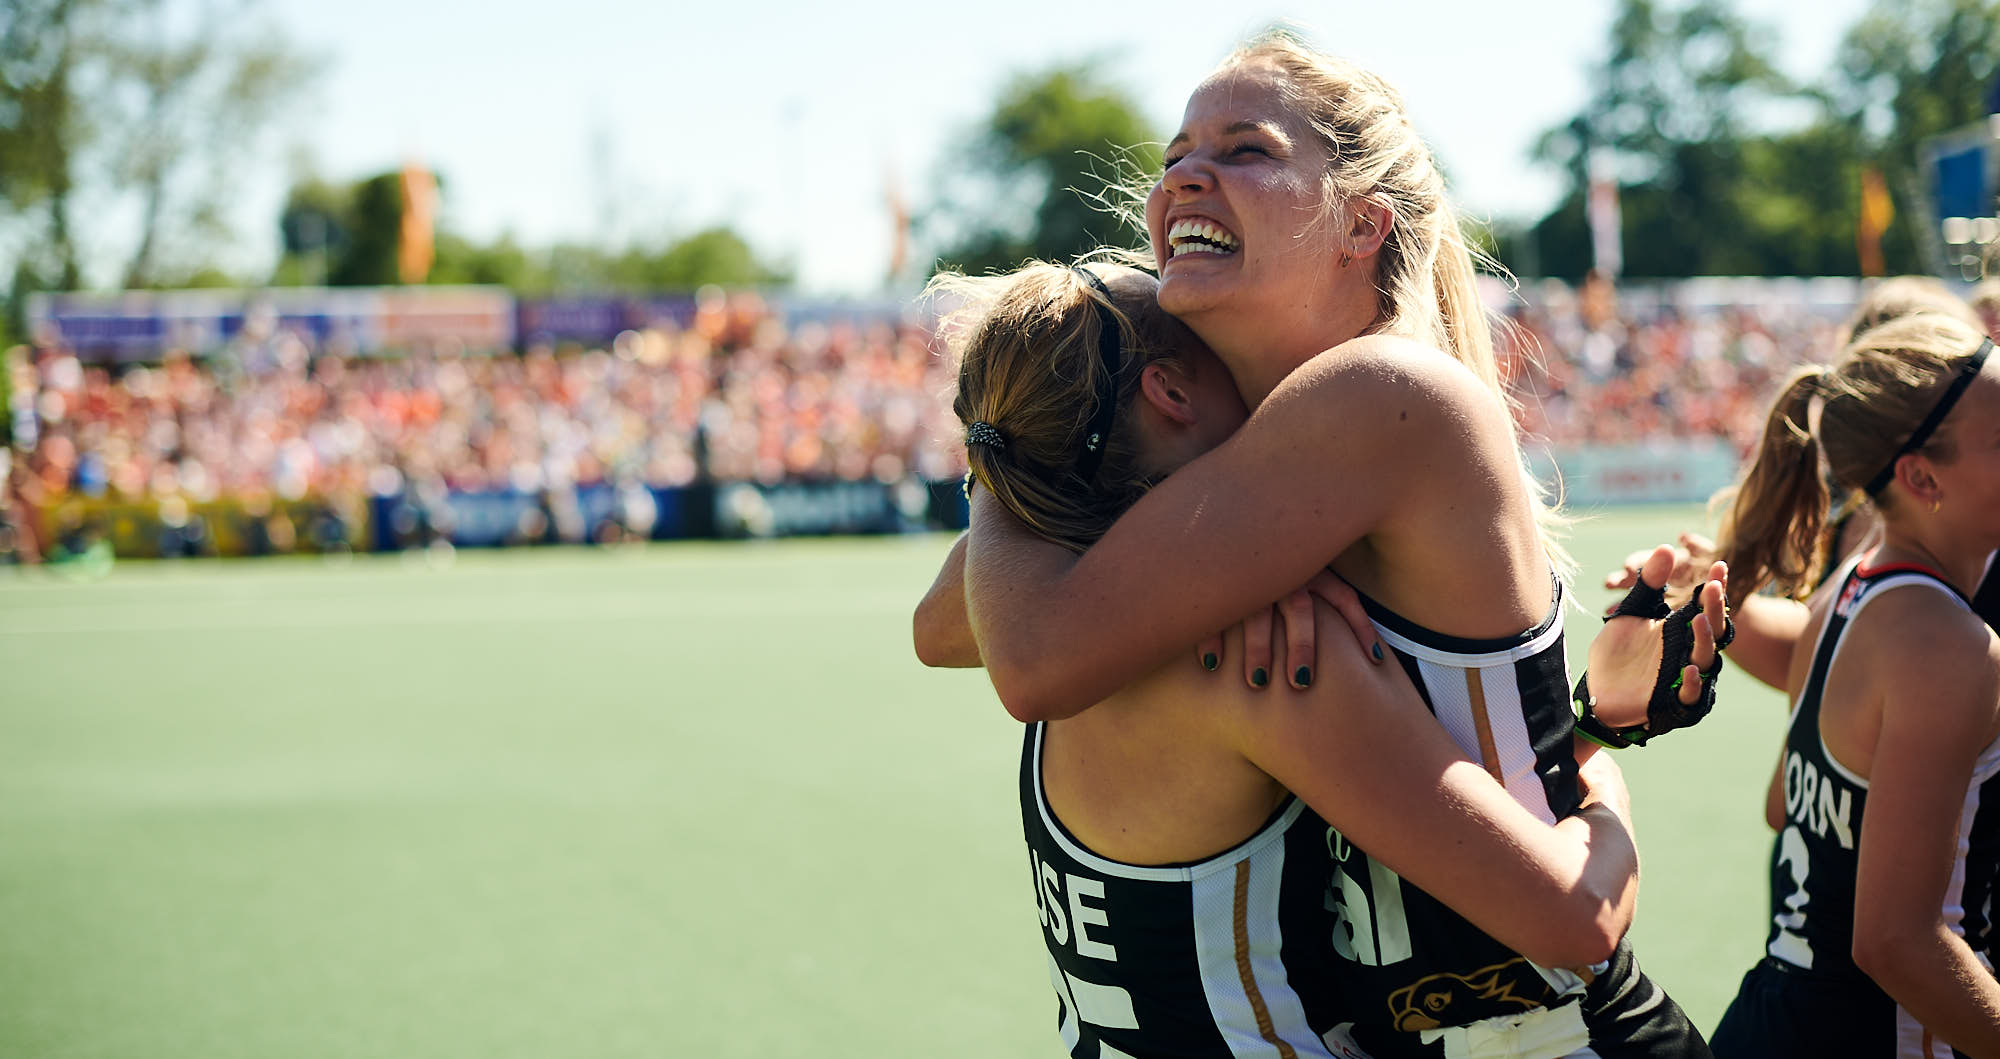 German hockey players embrace during FIH Pro league finals in Amsterdam